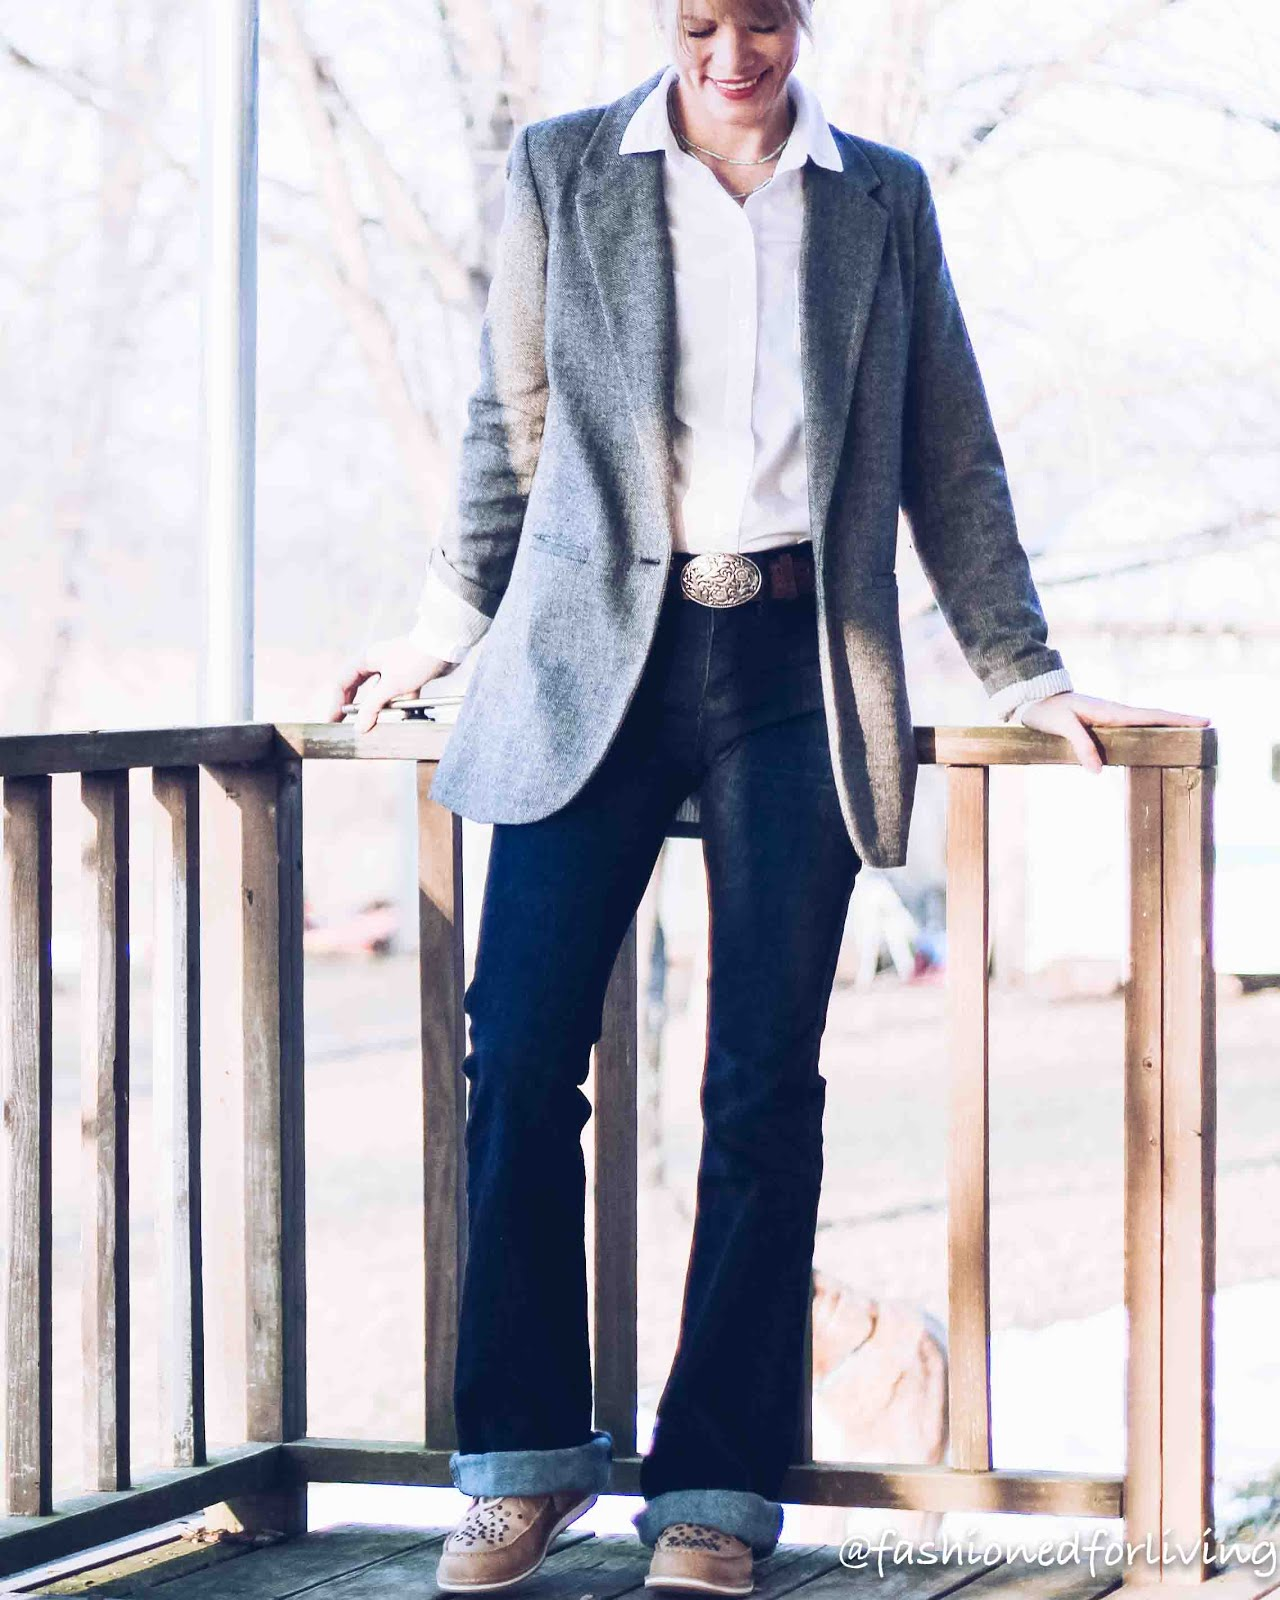 trouser jeans outfit western. cinch jeans. ariat cruisers.